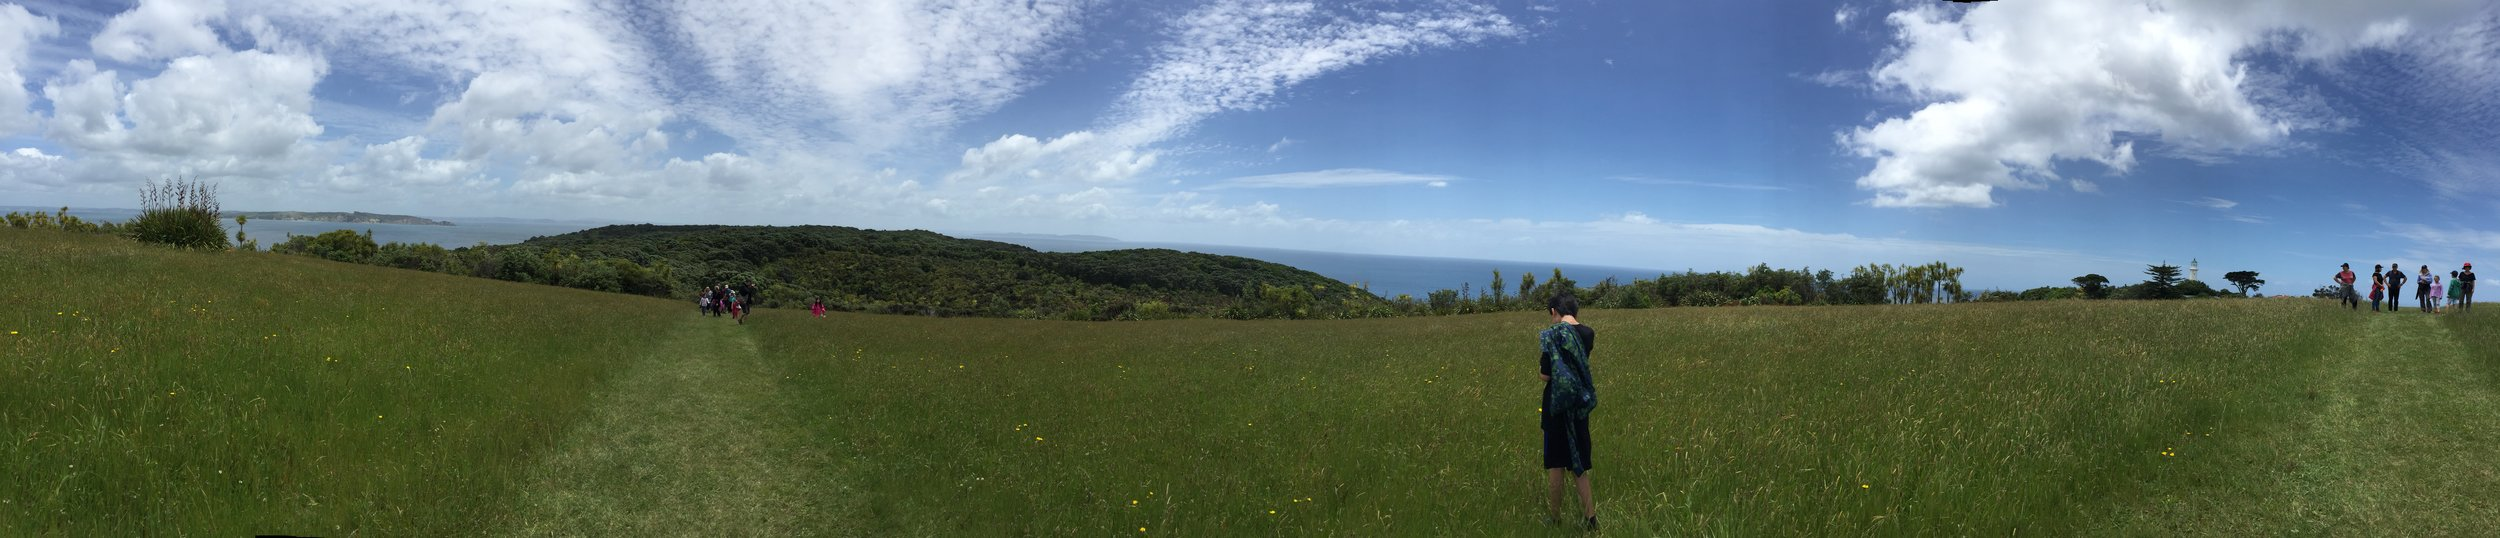 Panoramic view from one of the grassy open areas on Tiritiri Matangi.